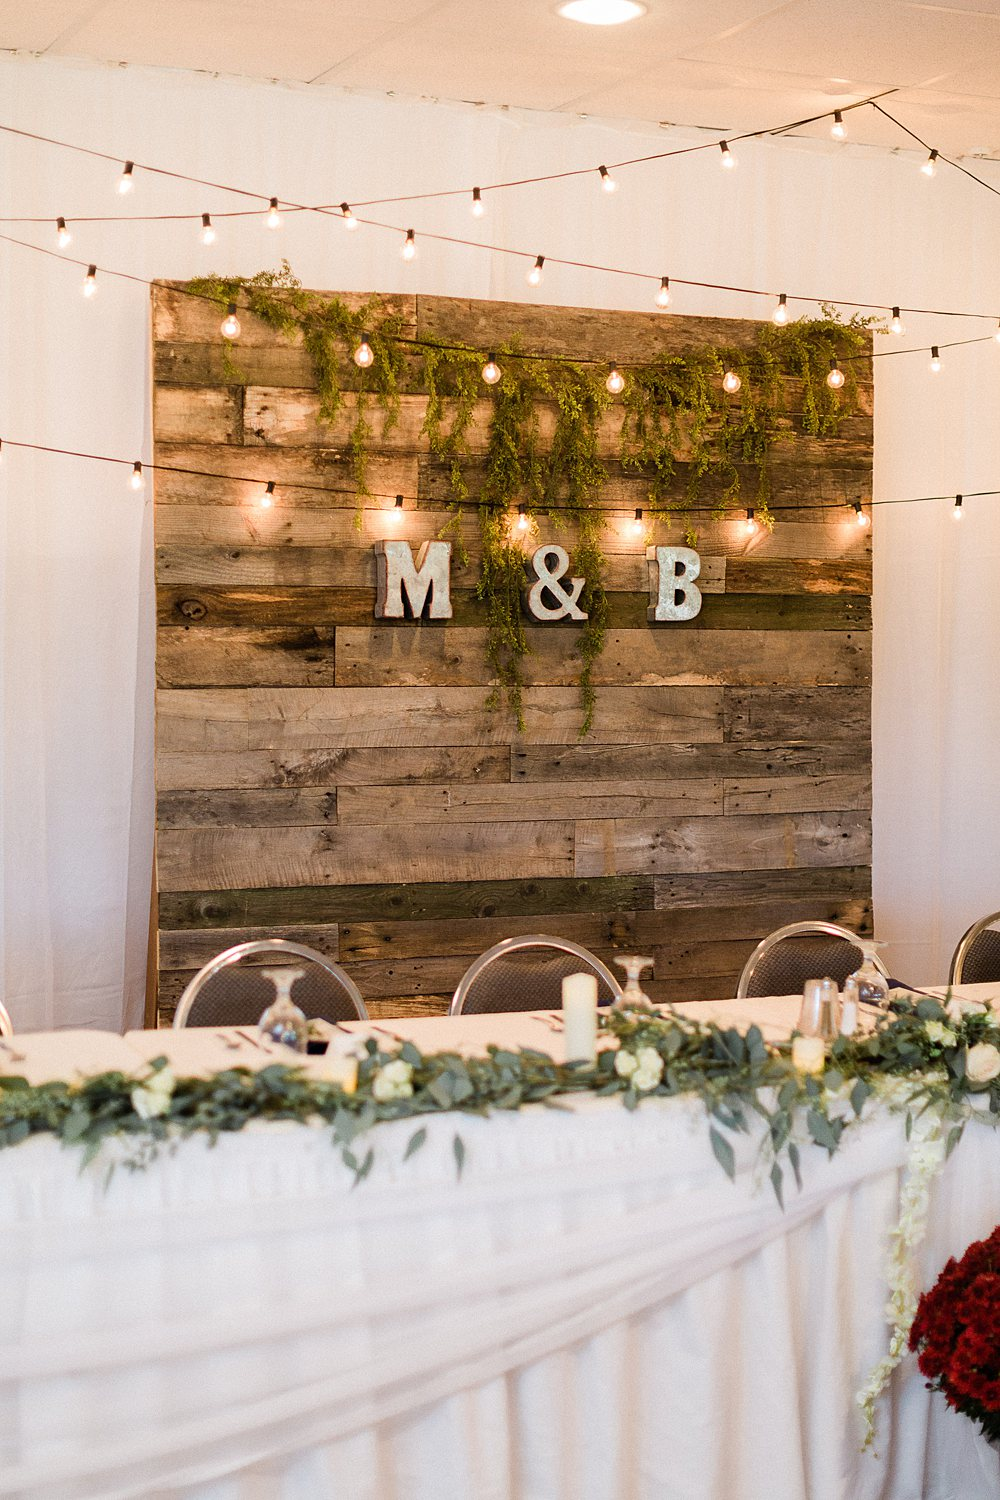 North_Central_Wisconsin_Event_Wedding_Venues_Fall_Weddings_The_Bailiwick_Venue_James-Stokes-Photography063.jpg